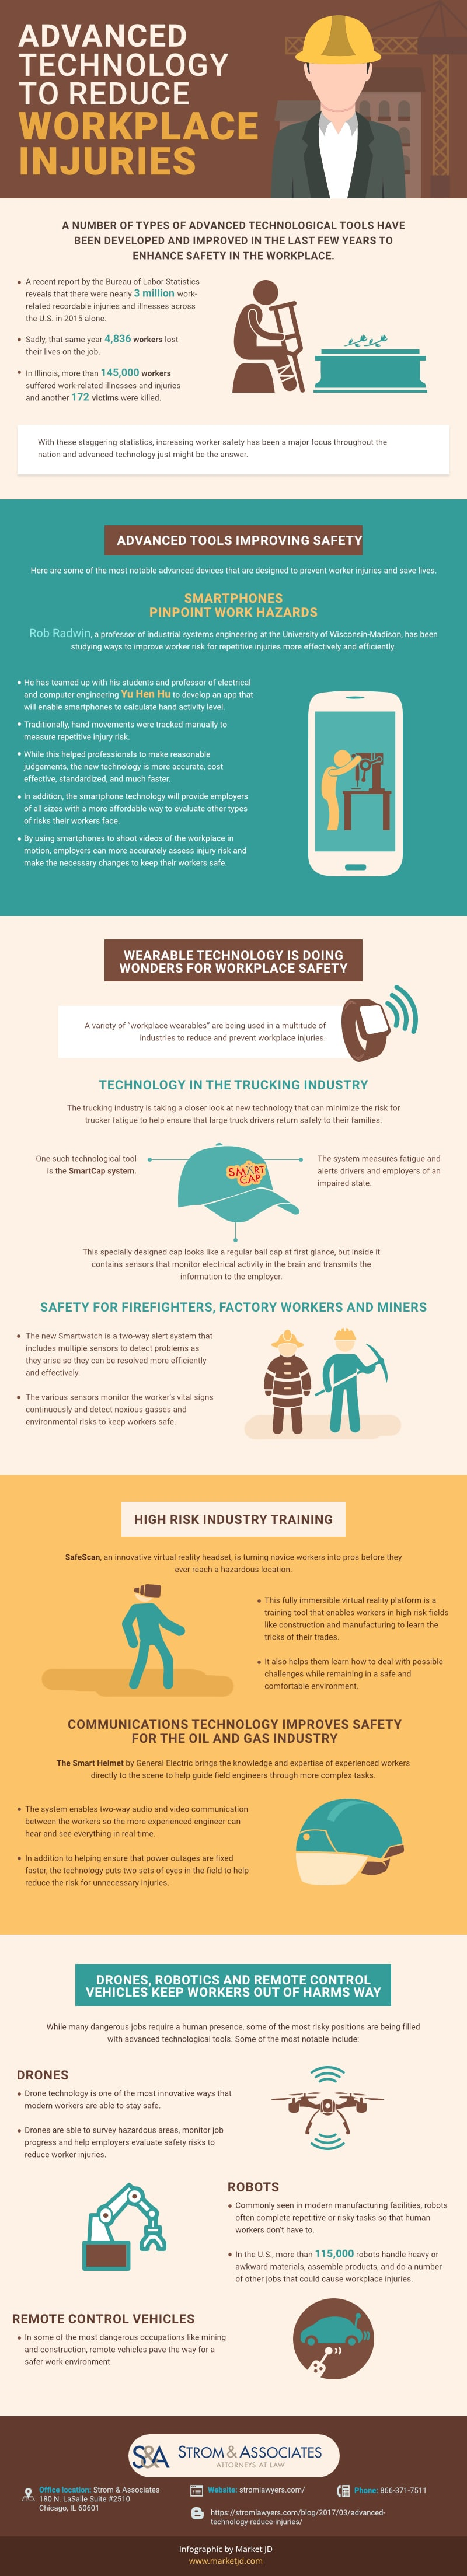 Reduce workplace injuries infographic